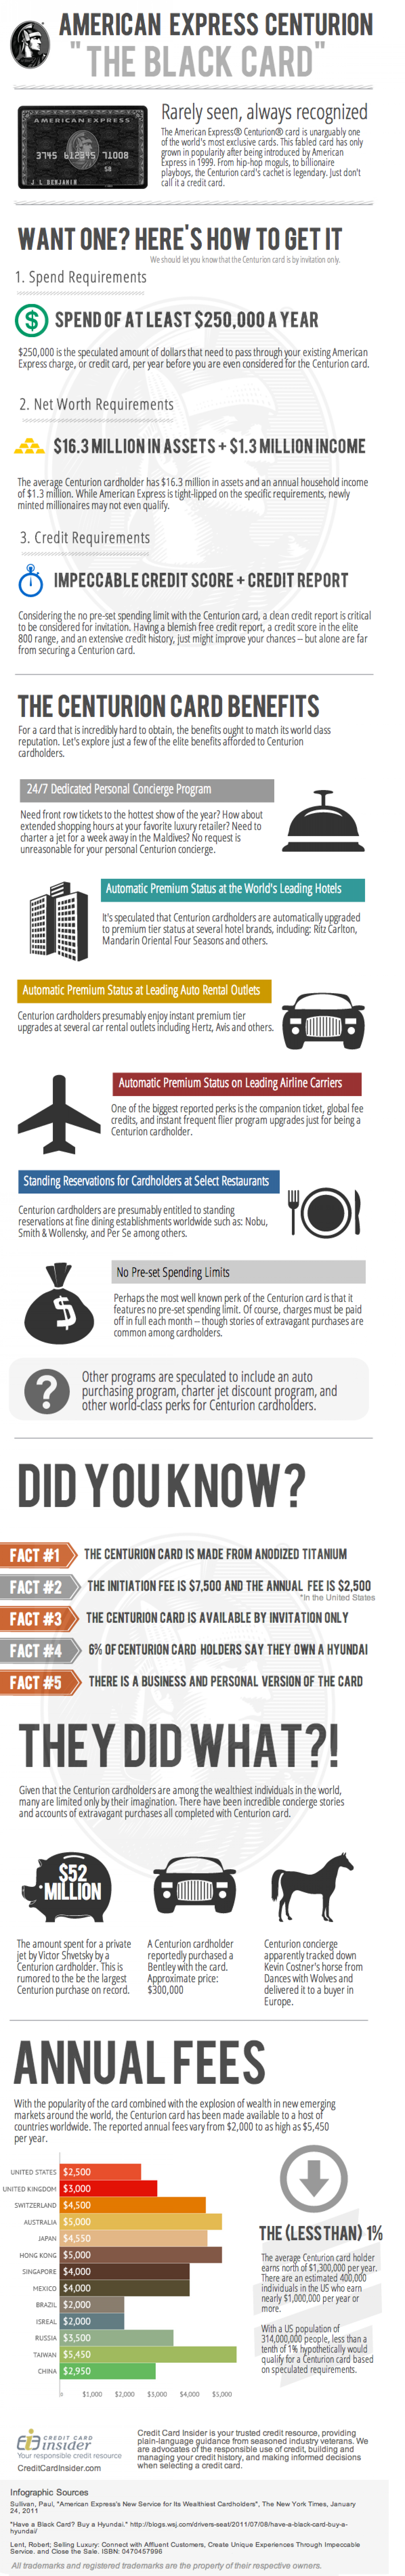 """The American Express Centurion """"Black Card"""" Infographic Infographic"""